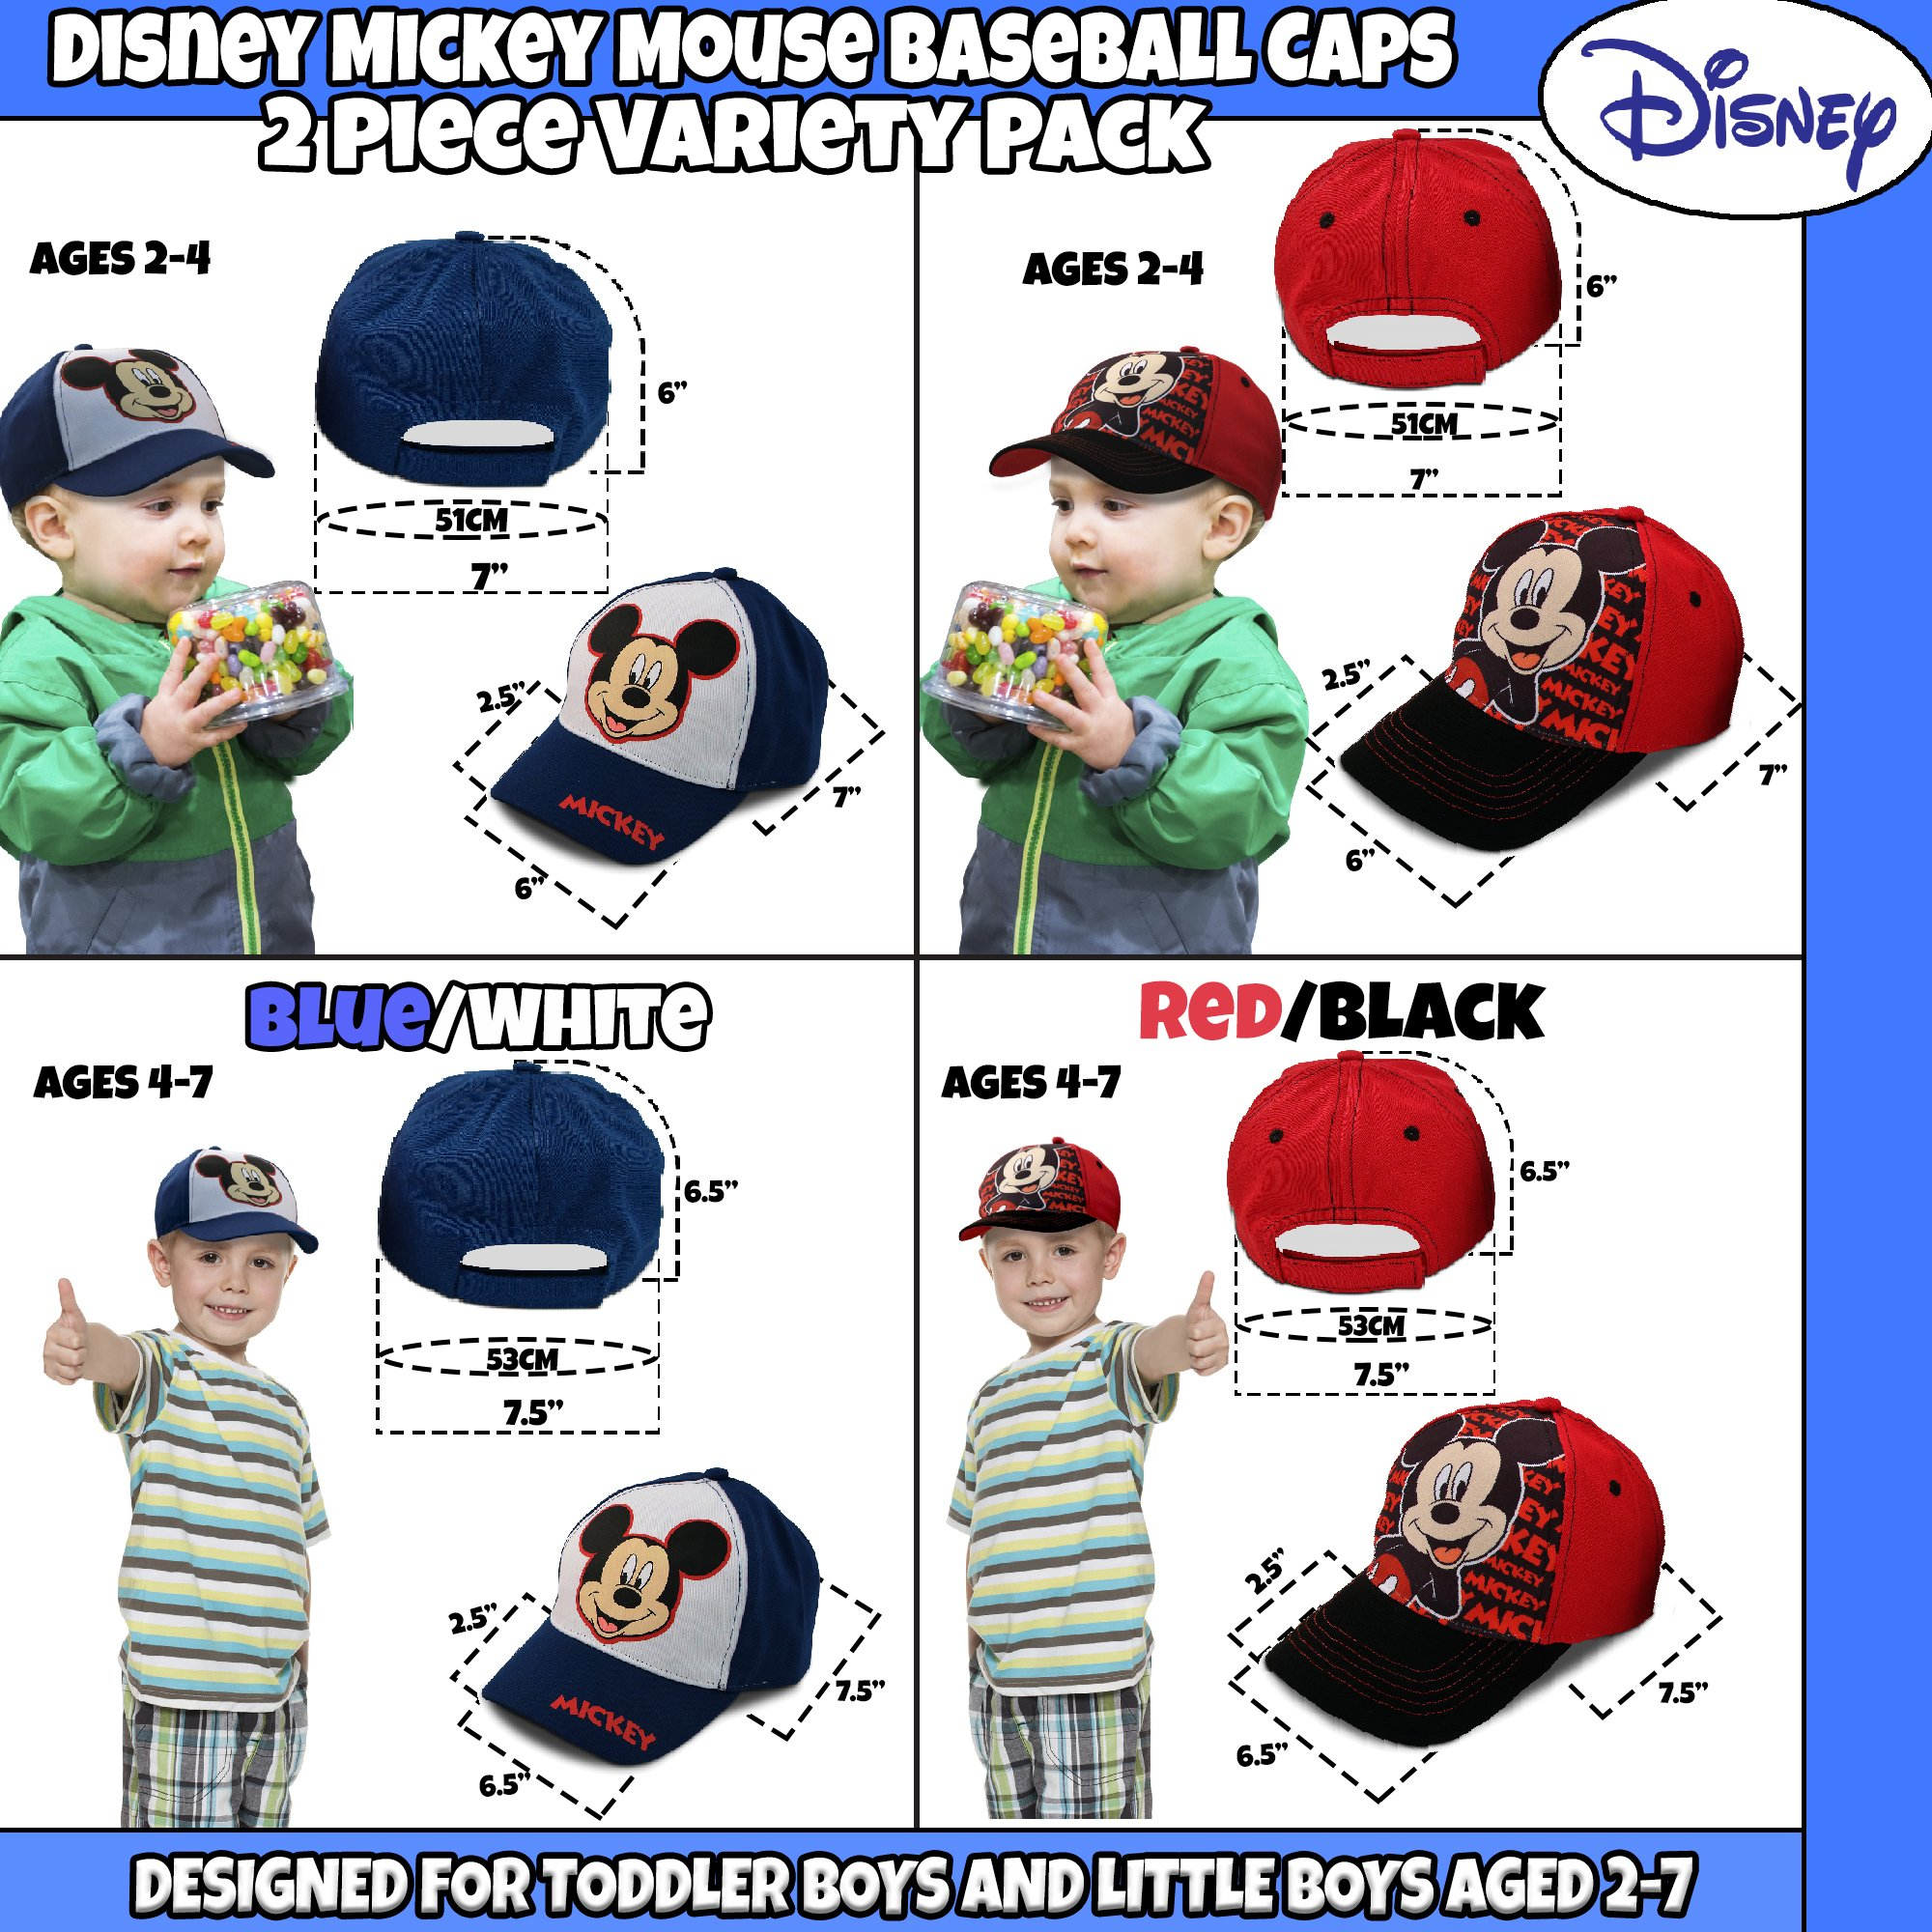 Disney Little Boys Assorted Character Cotton Baseball Cap, 2 Piece Design Set, Age 2-7 (Toddler Boys – Age 2-4 – 51 cm, Mickey Mouse Design – 2 Piece Set) by Disney (Image #4)